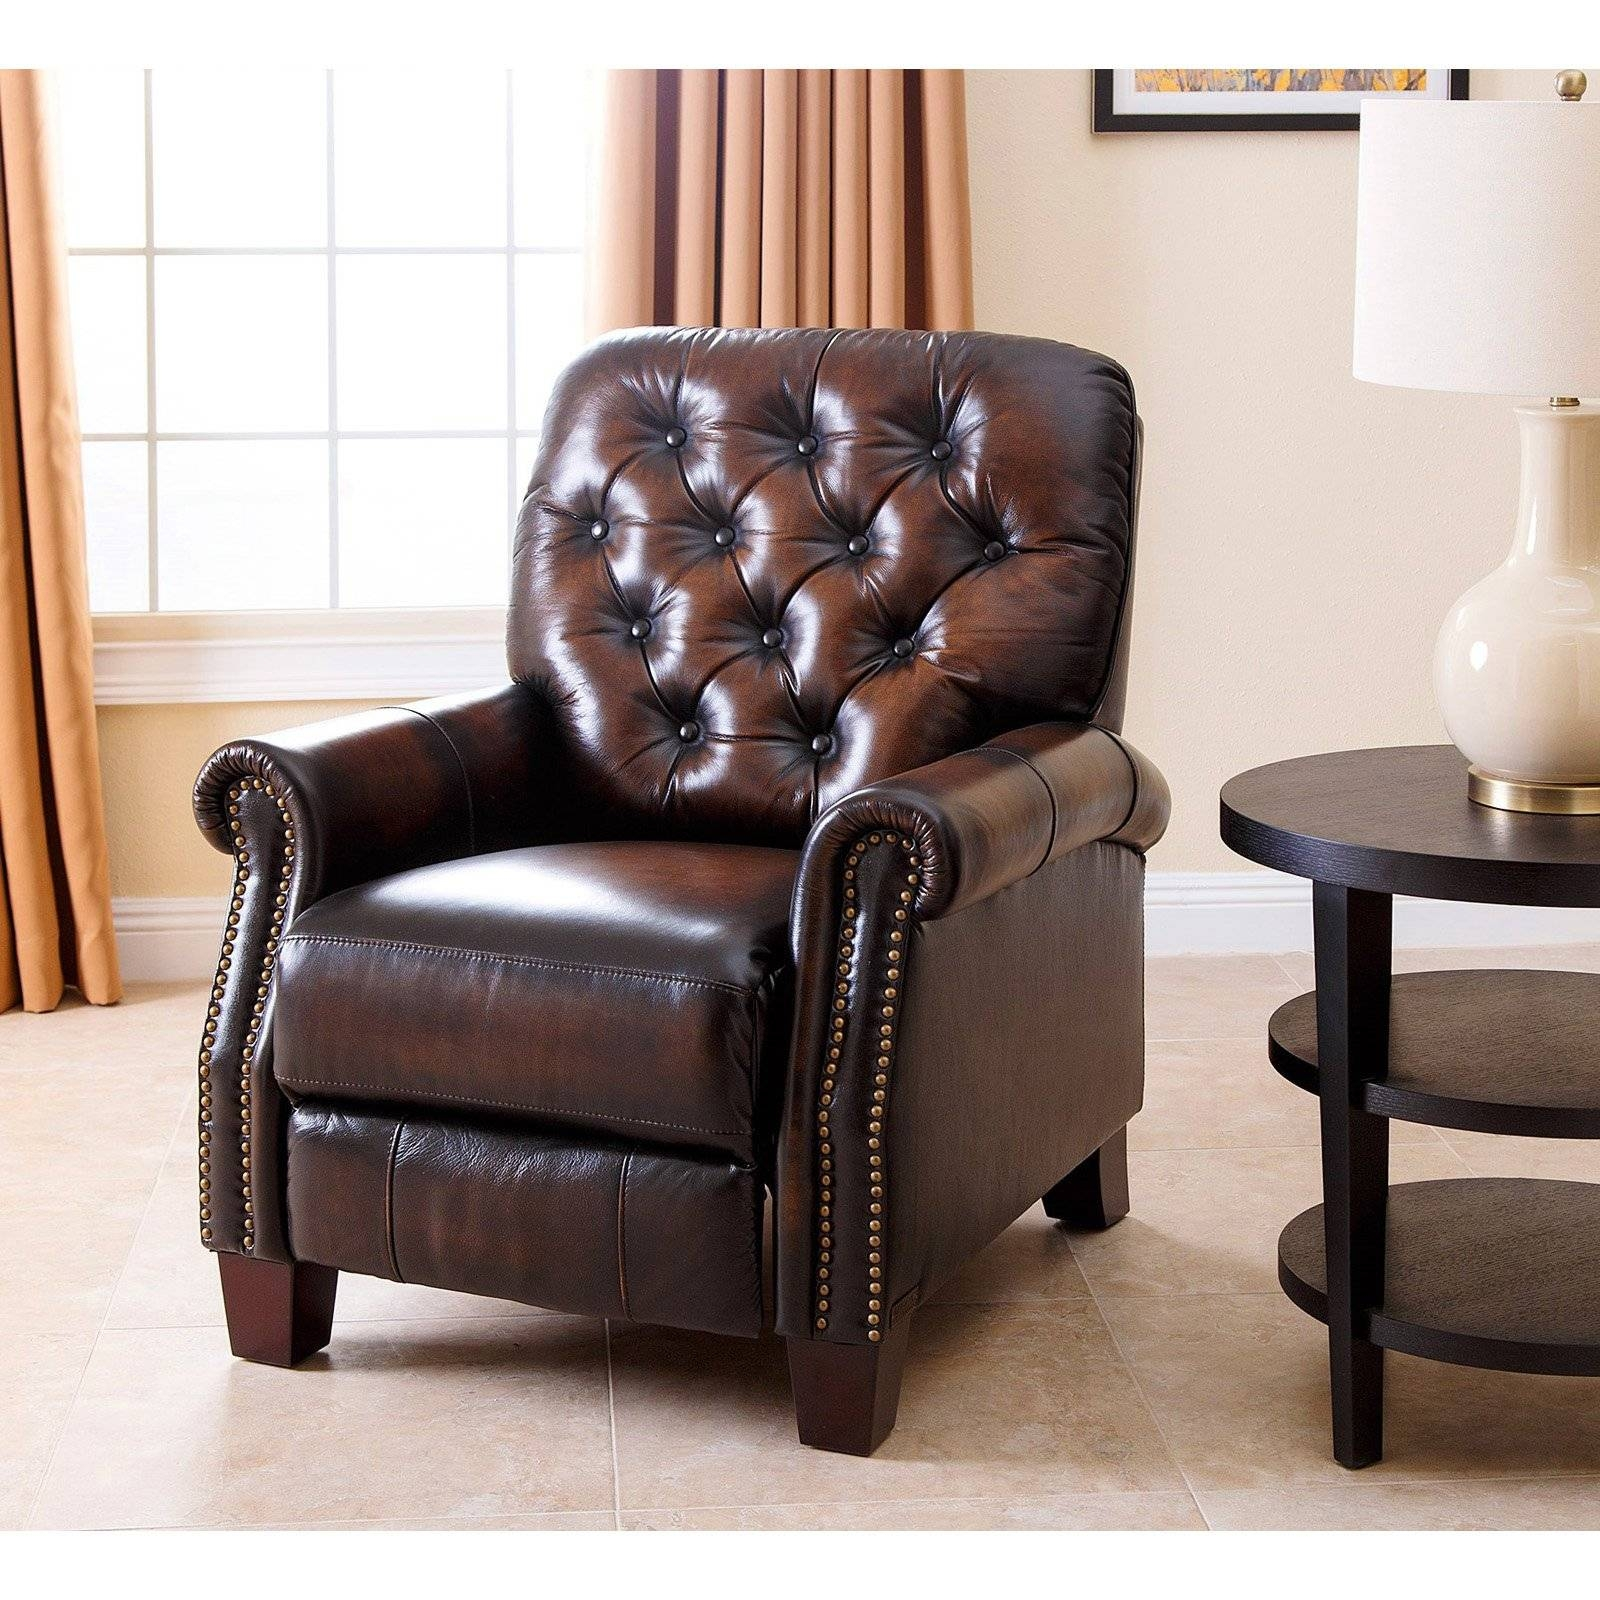 Abbyson Hogan Italian Leather Reclining Chair With Nailheads regarding Abbyson Recliners (Image 3 of 15)